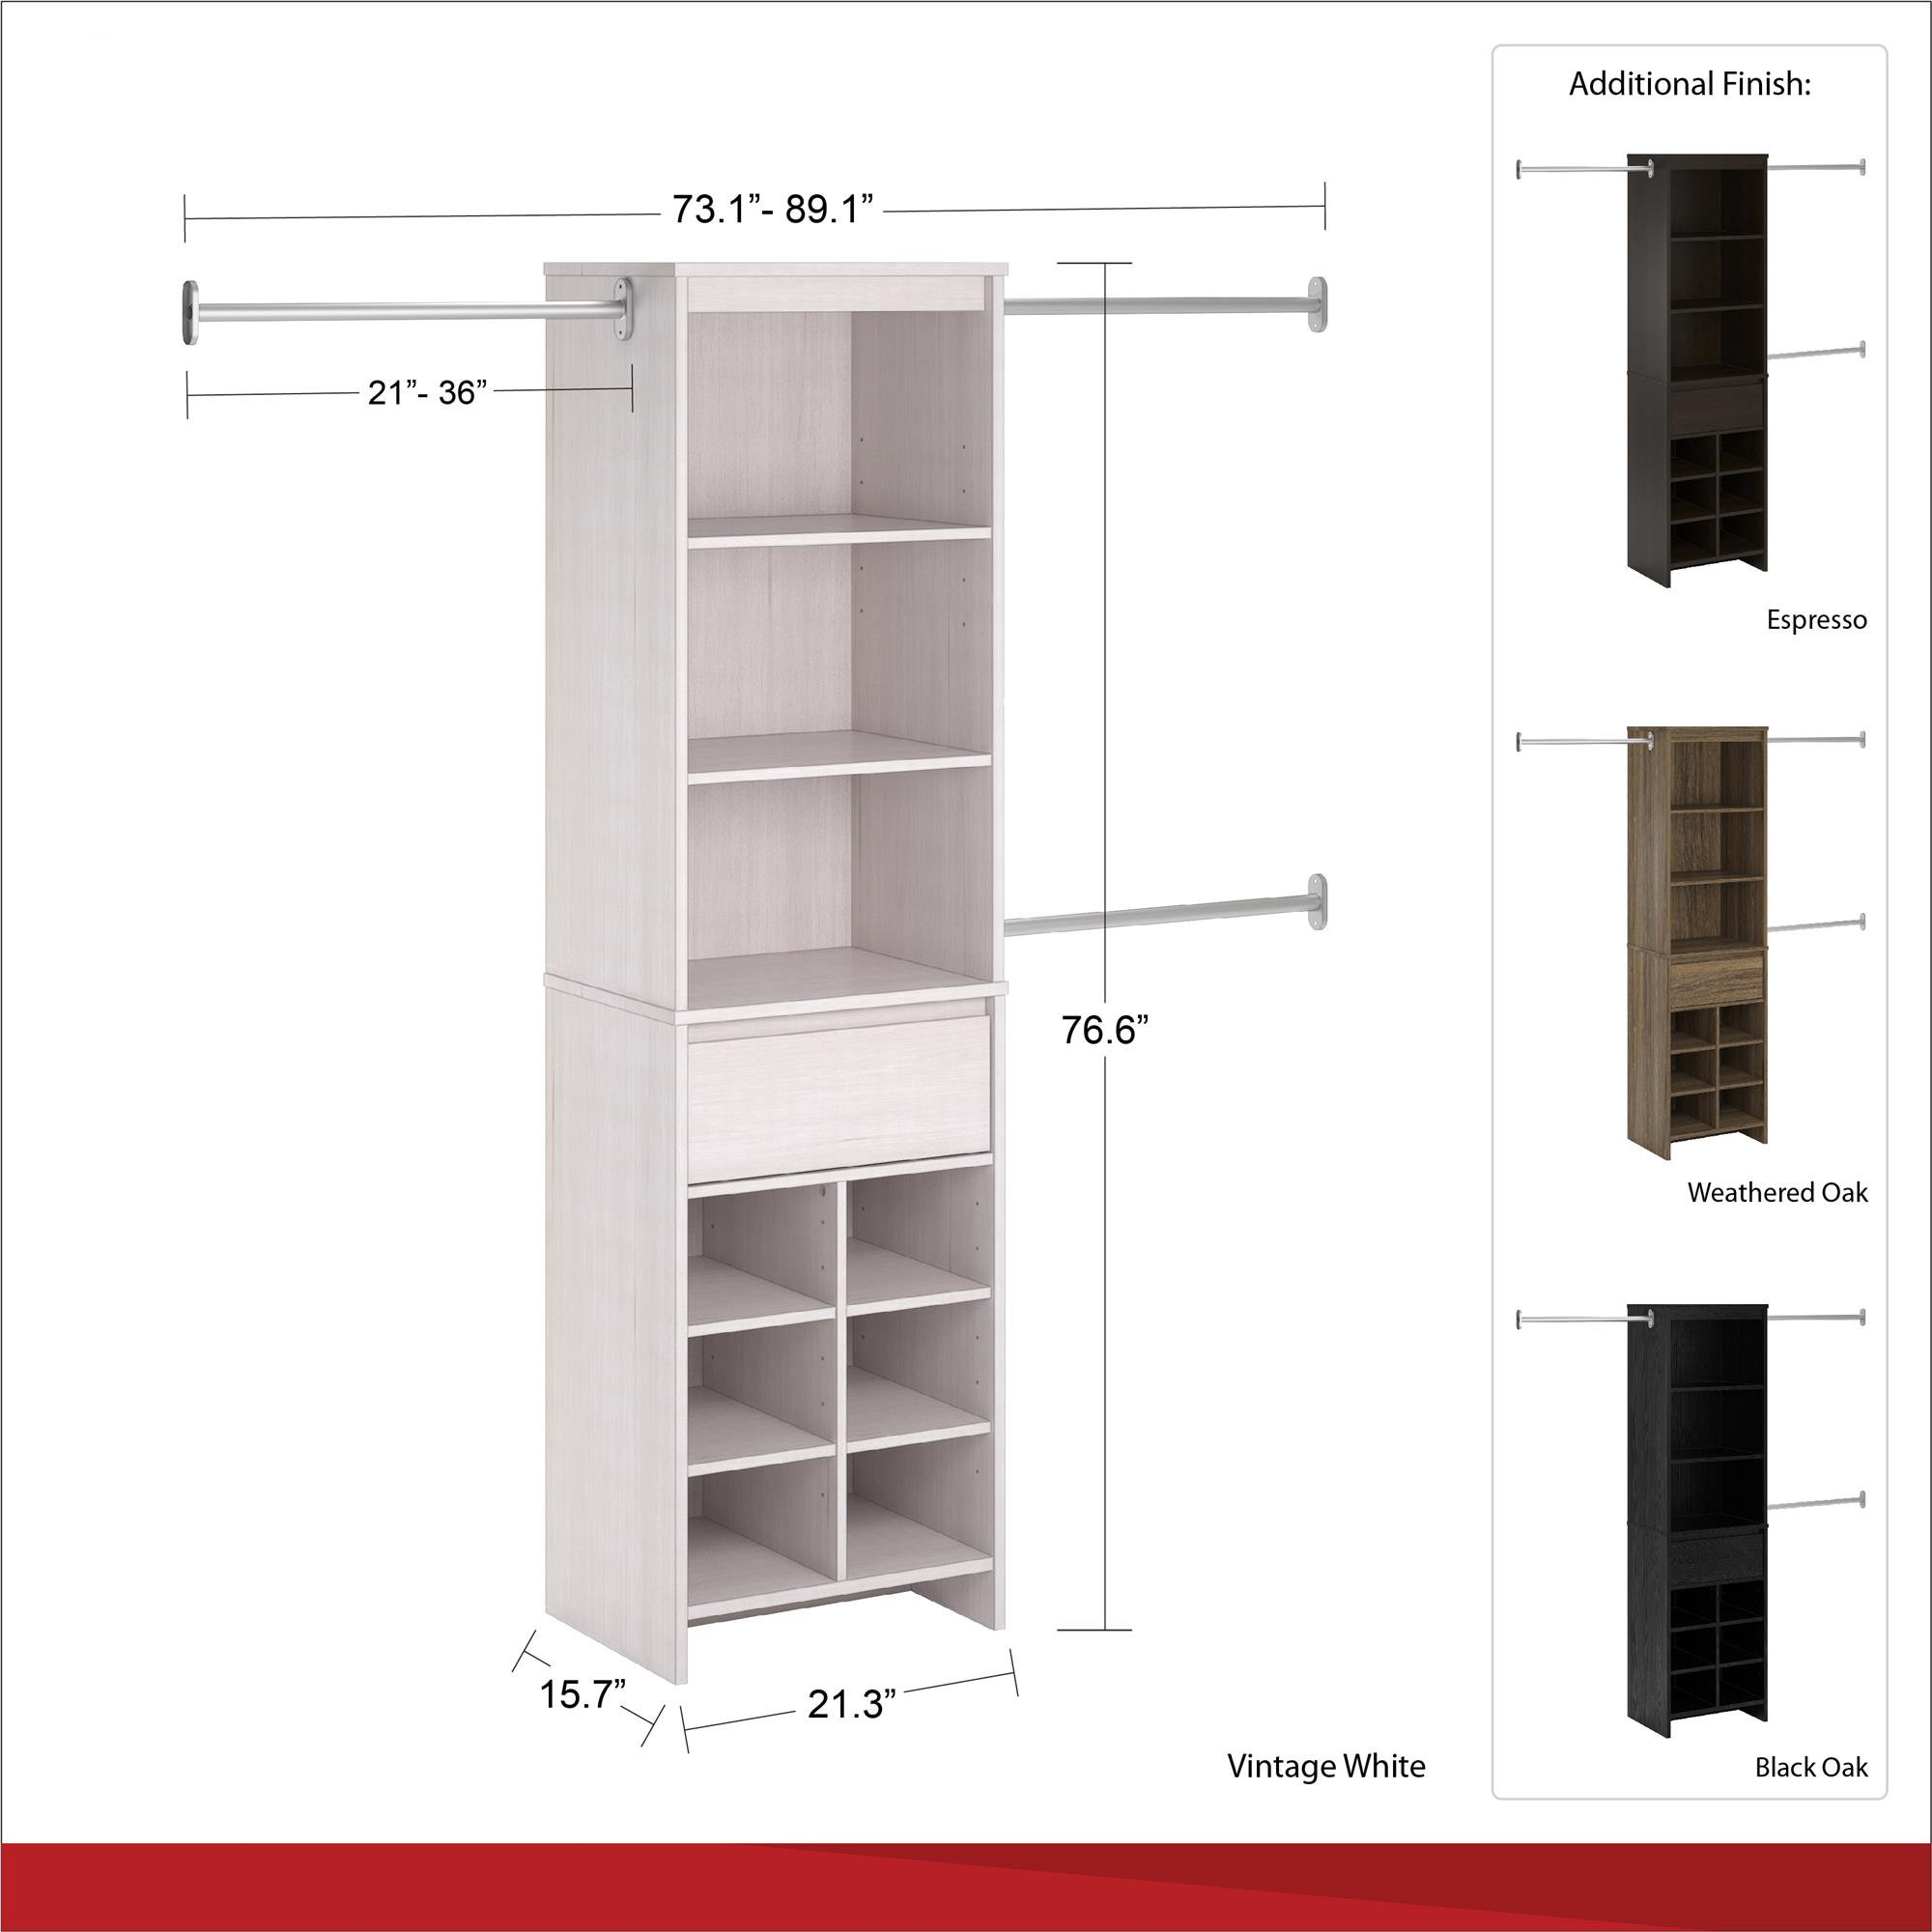 Ameriwood Home Adult Closet System, Espresso by Ameriwood Home (Image #11)